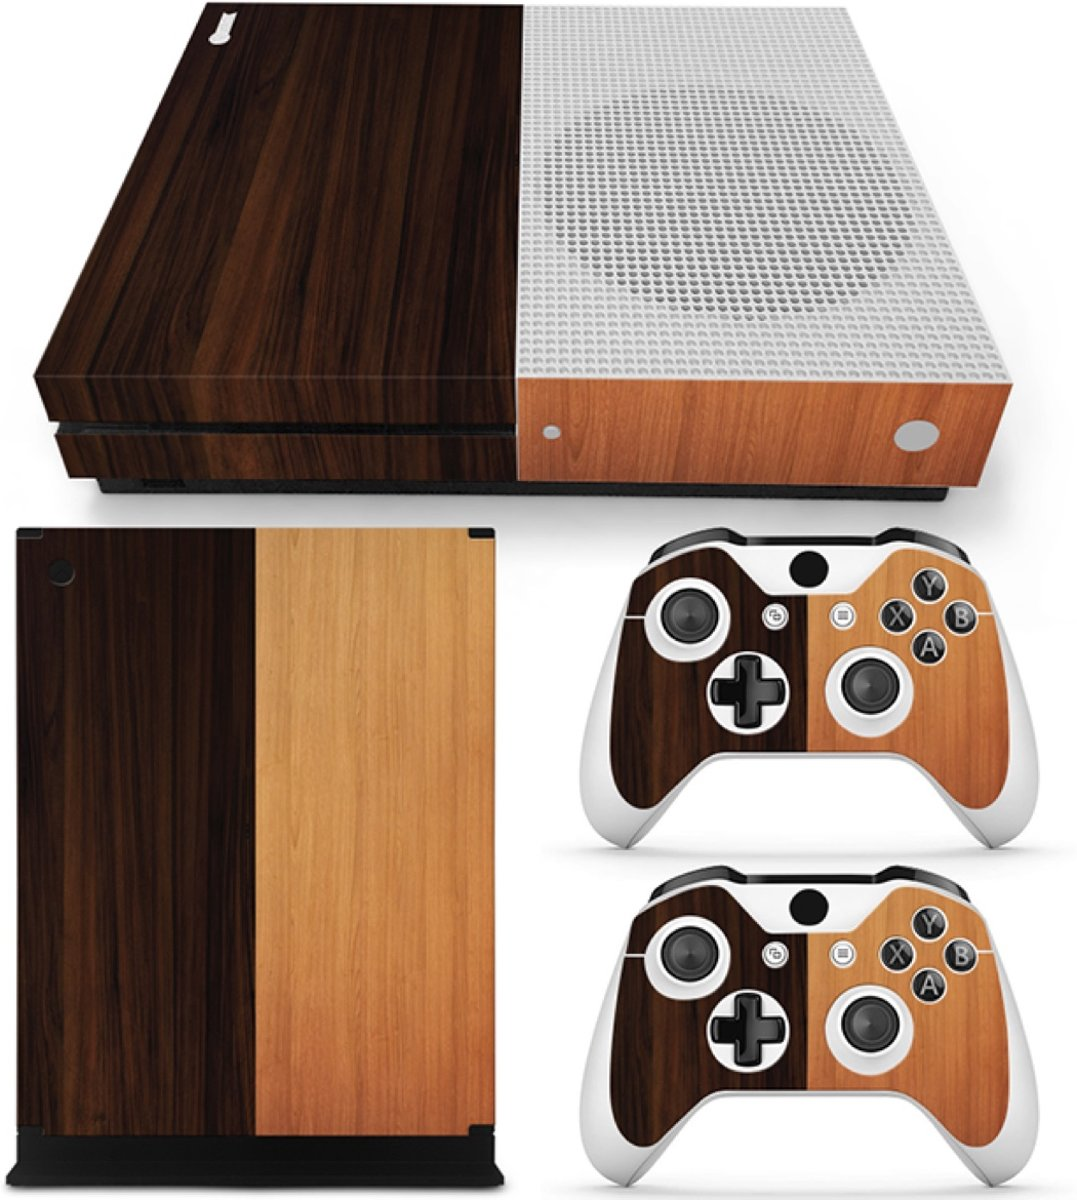 Wood Mix - Xbox One S Console Skins Stickers